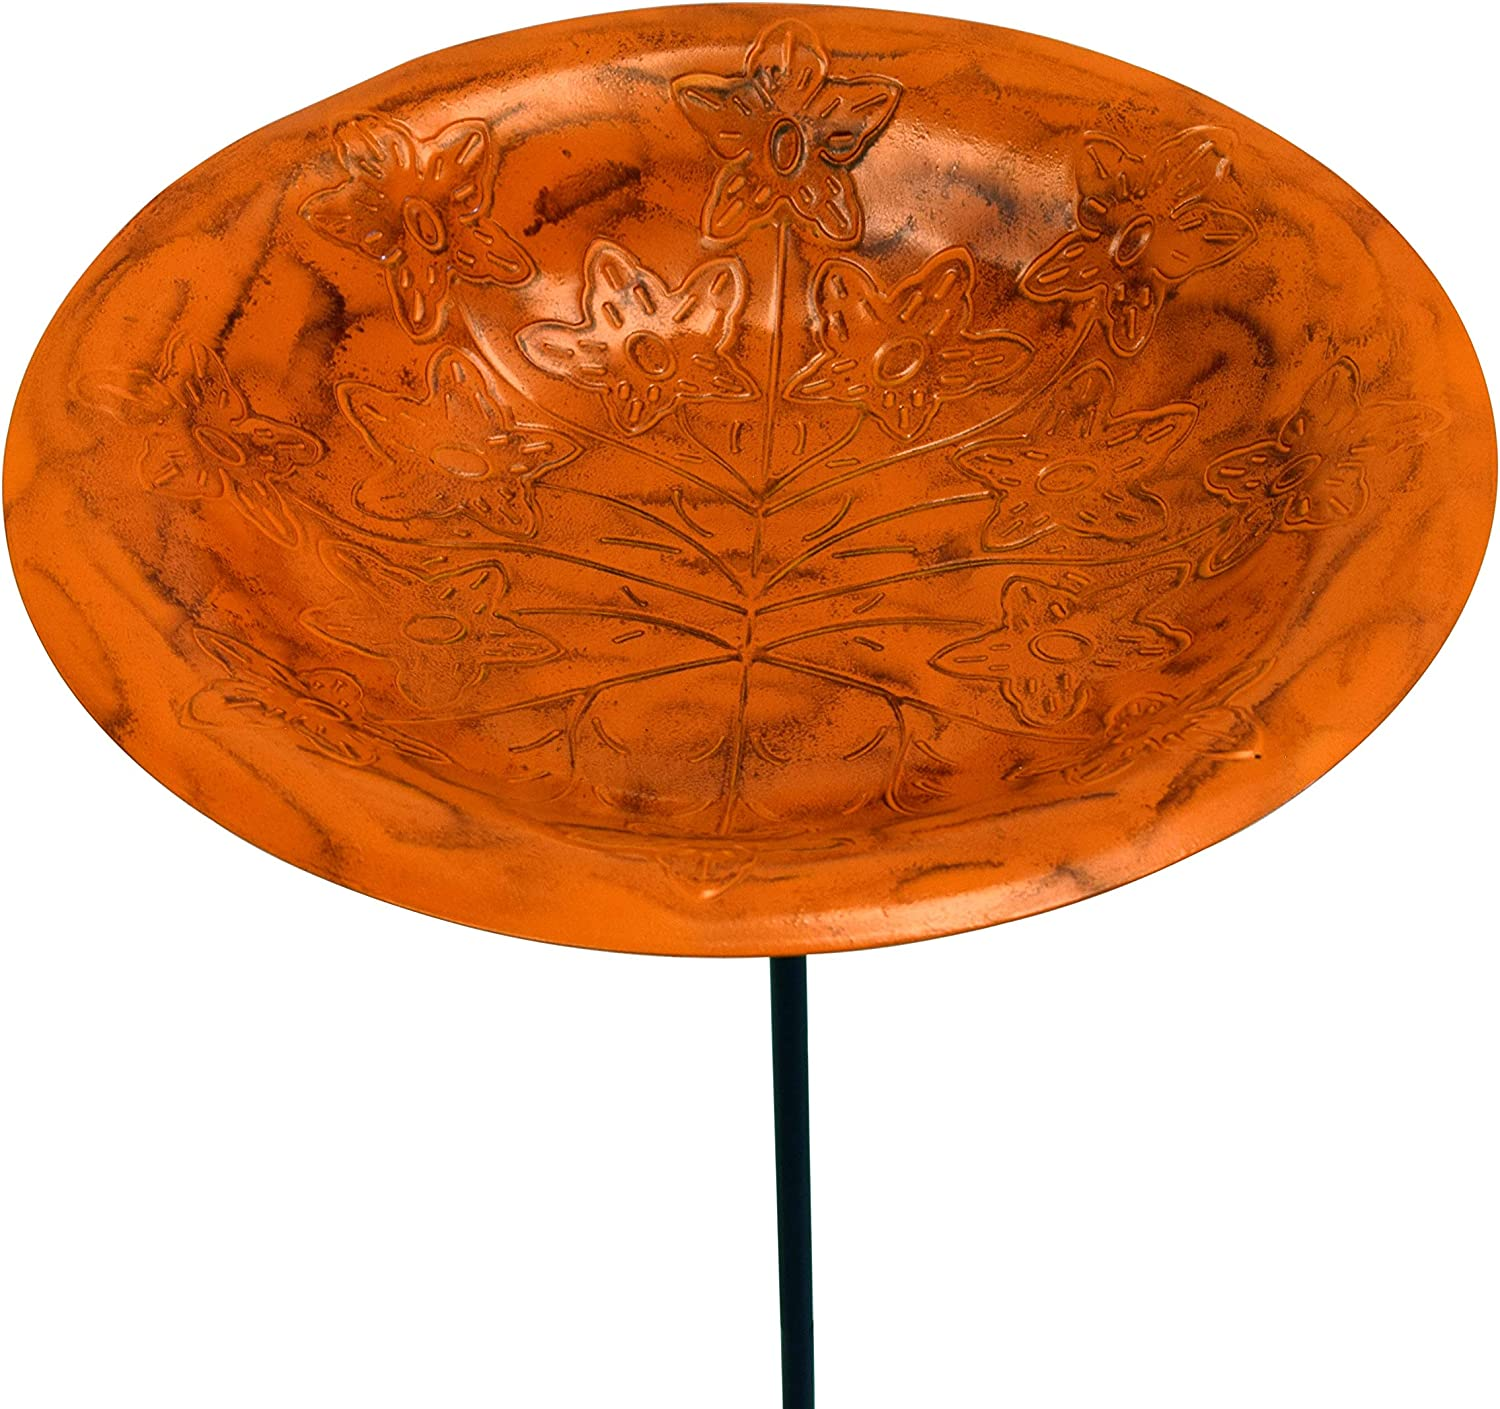 Sunset Orange Paradise Monarch Abode 19141 Handcrafted Standing Bird Bath with Metal Stake